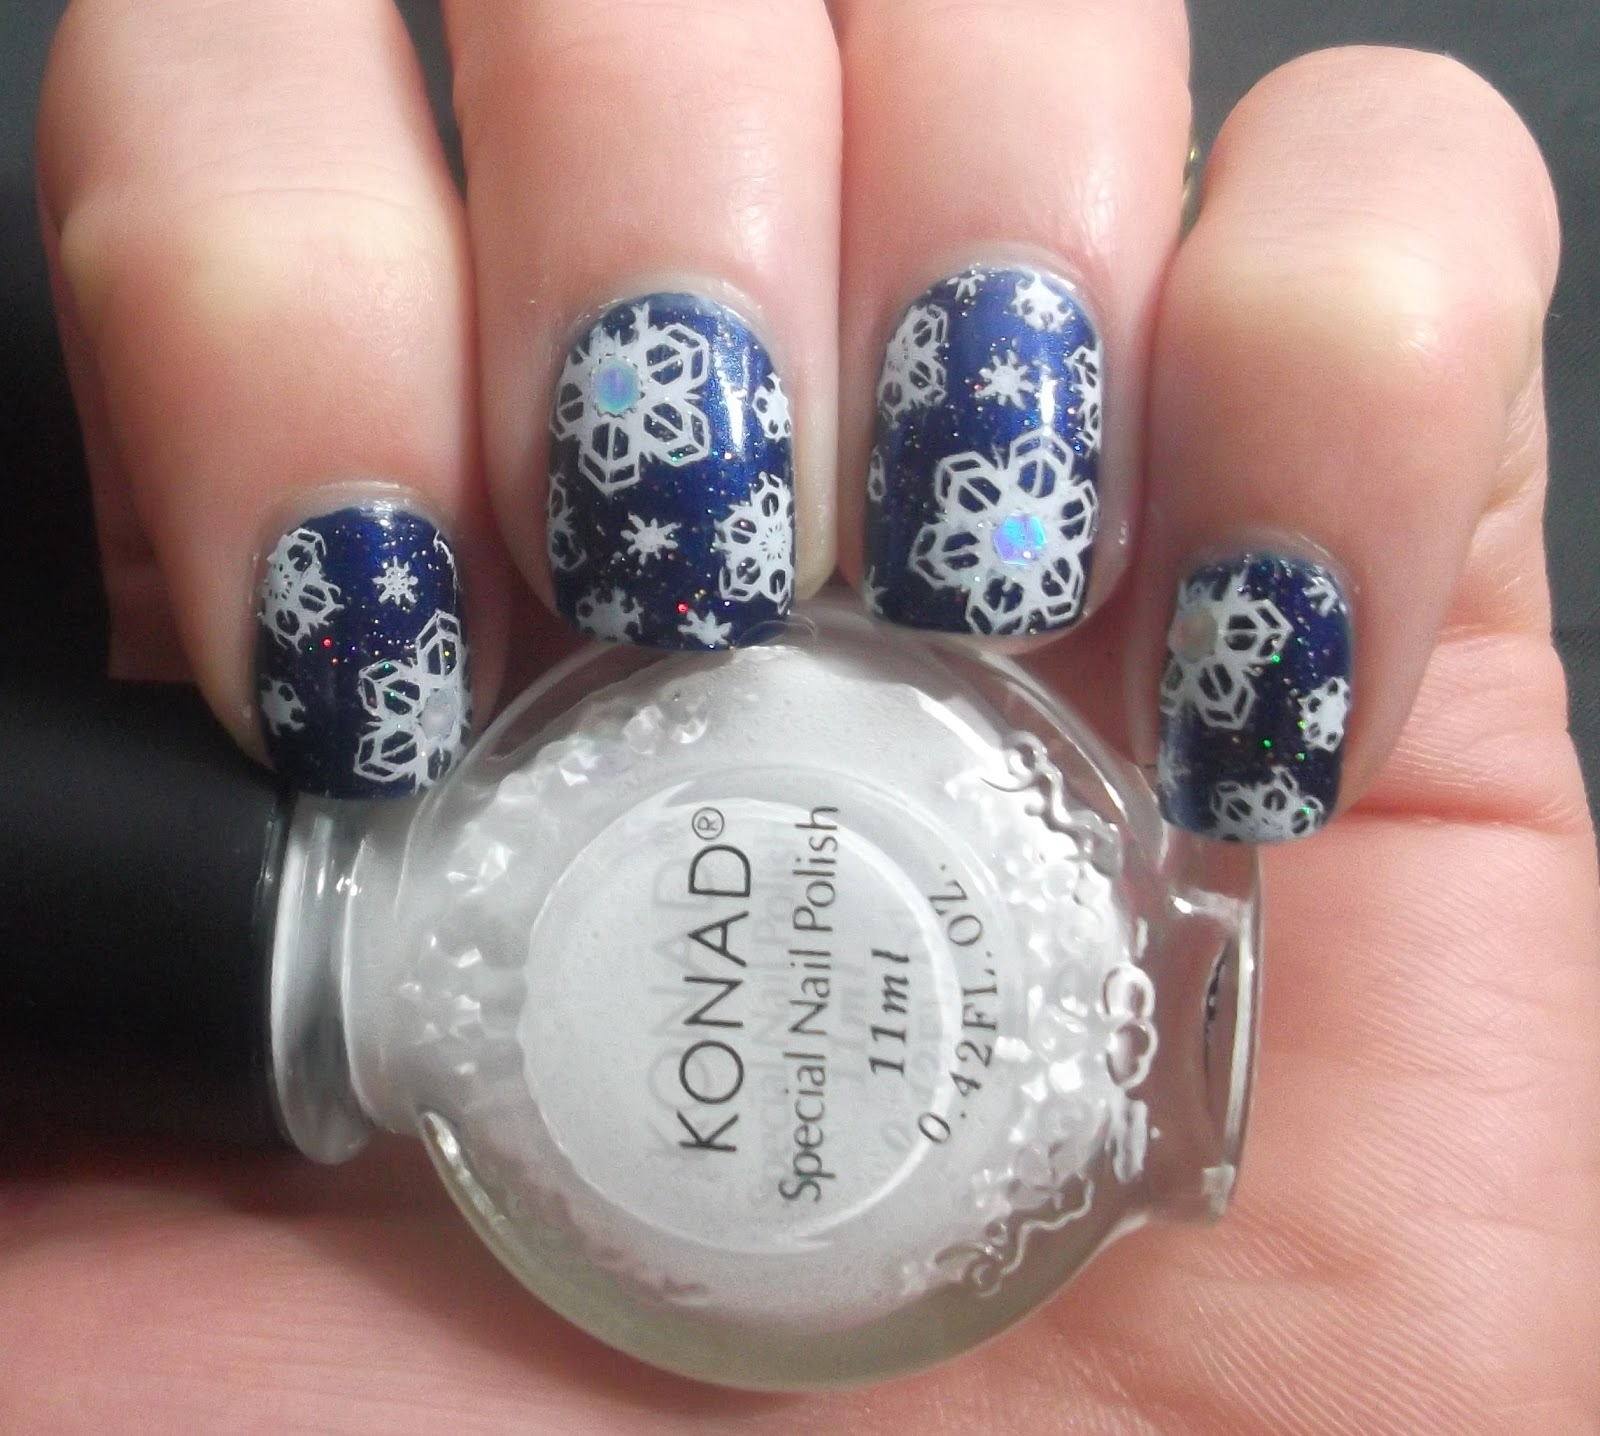 Lou is Perfectly Polished: Christmas Nails: Snowflakes